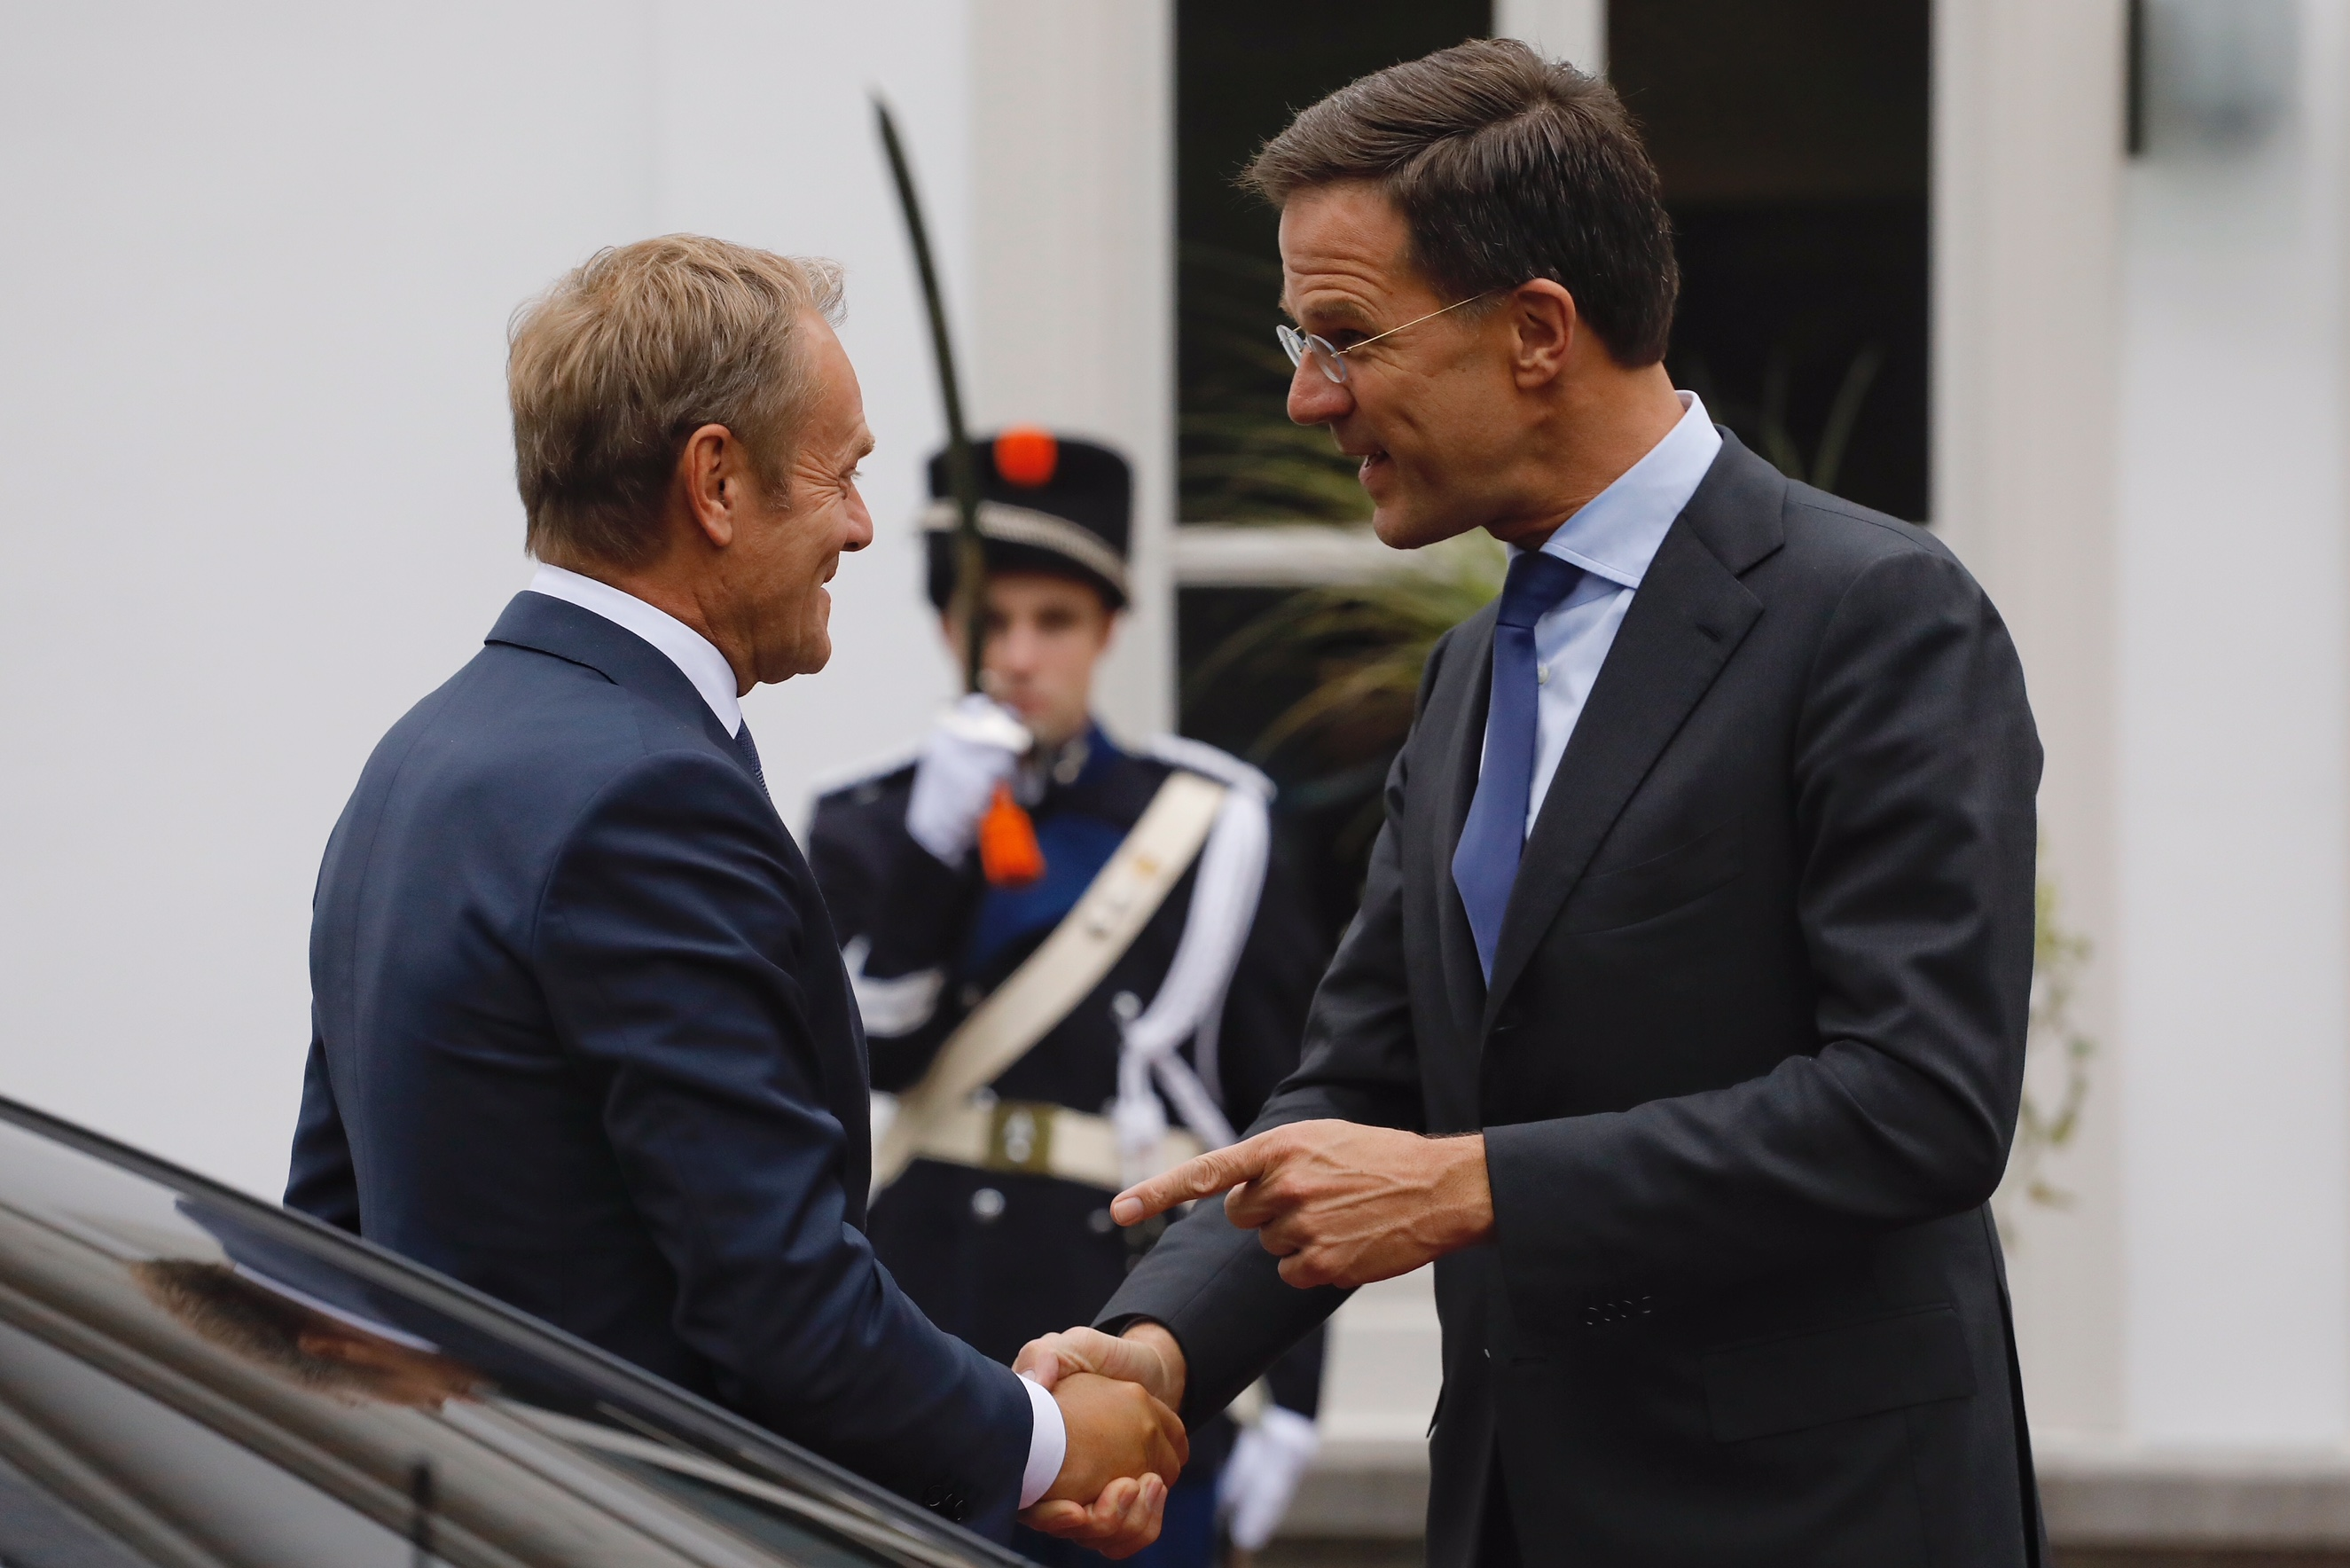 From left to right: Mr Donald TUSK, President of the European Council; Mr Mark RUTTE, Dutch Prime Minister.